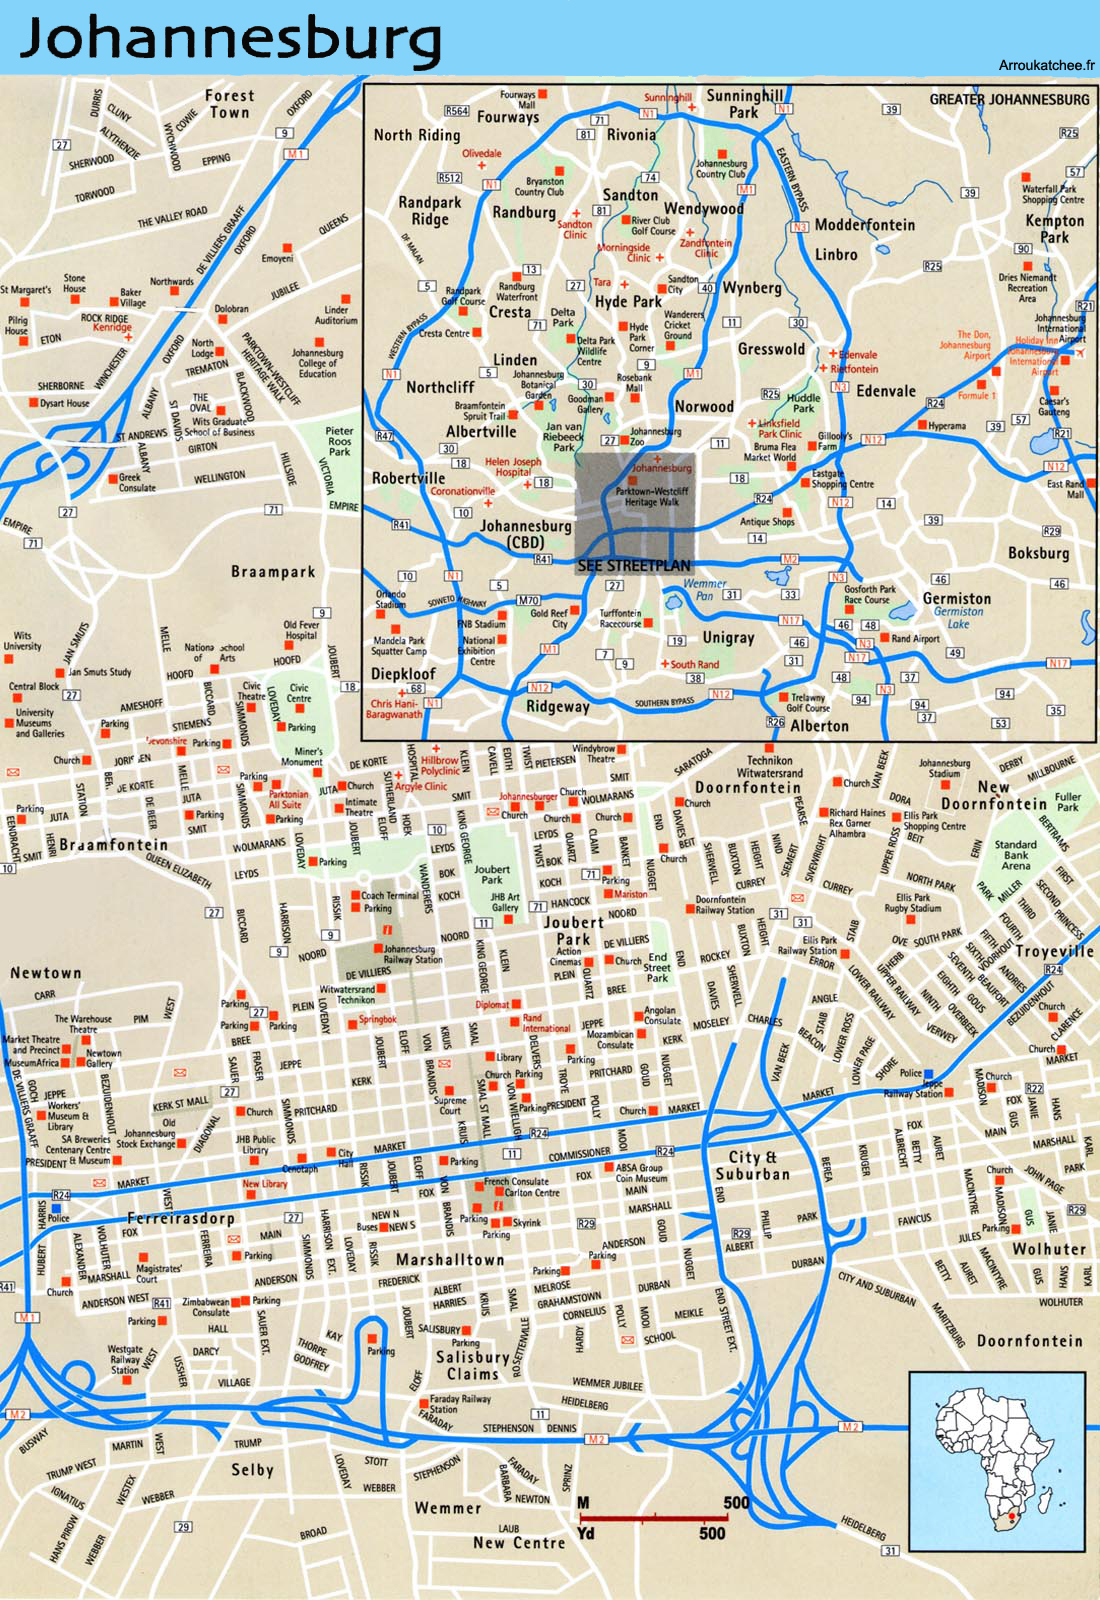 Large Johannesburg Maps for Free Download and Print High